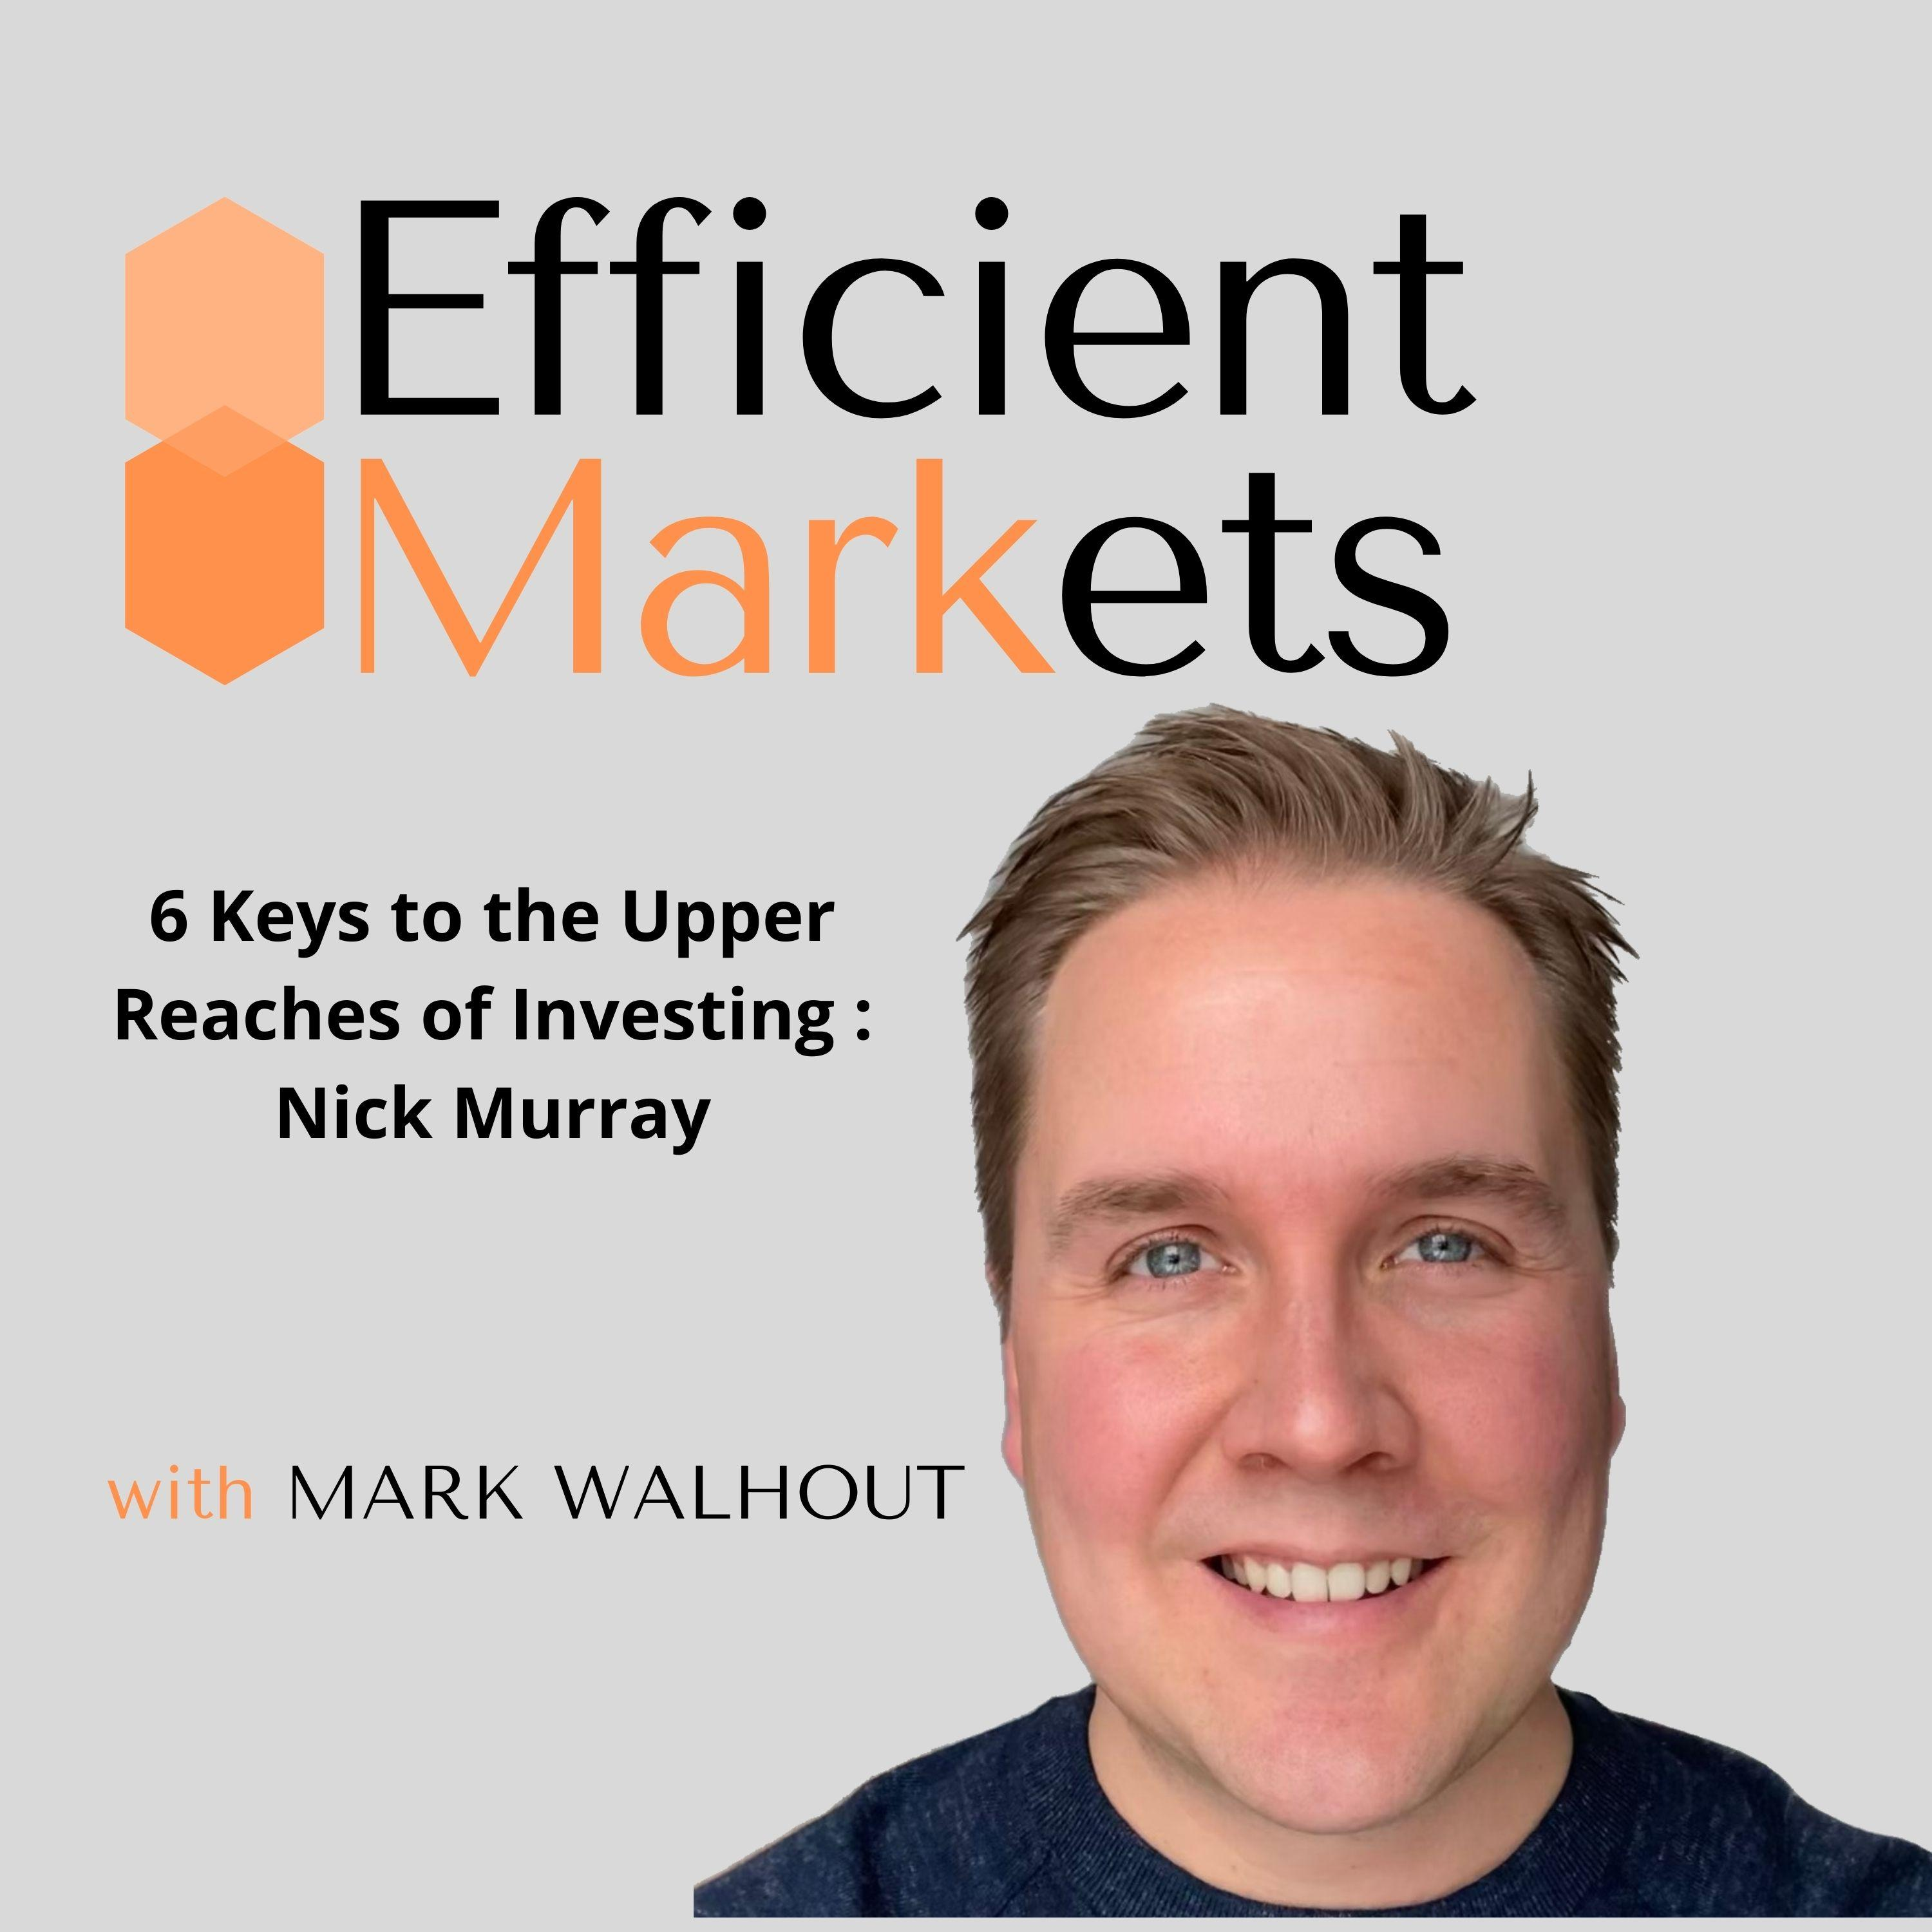 6 Keys to the Upper Reaches of Investing : Nick Murray Thumbnail